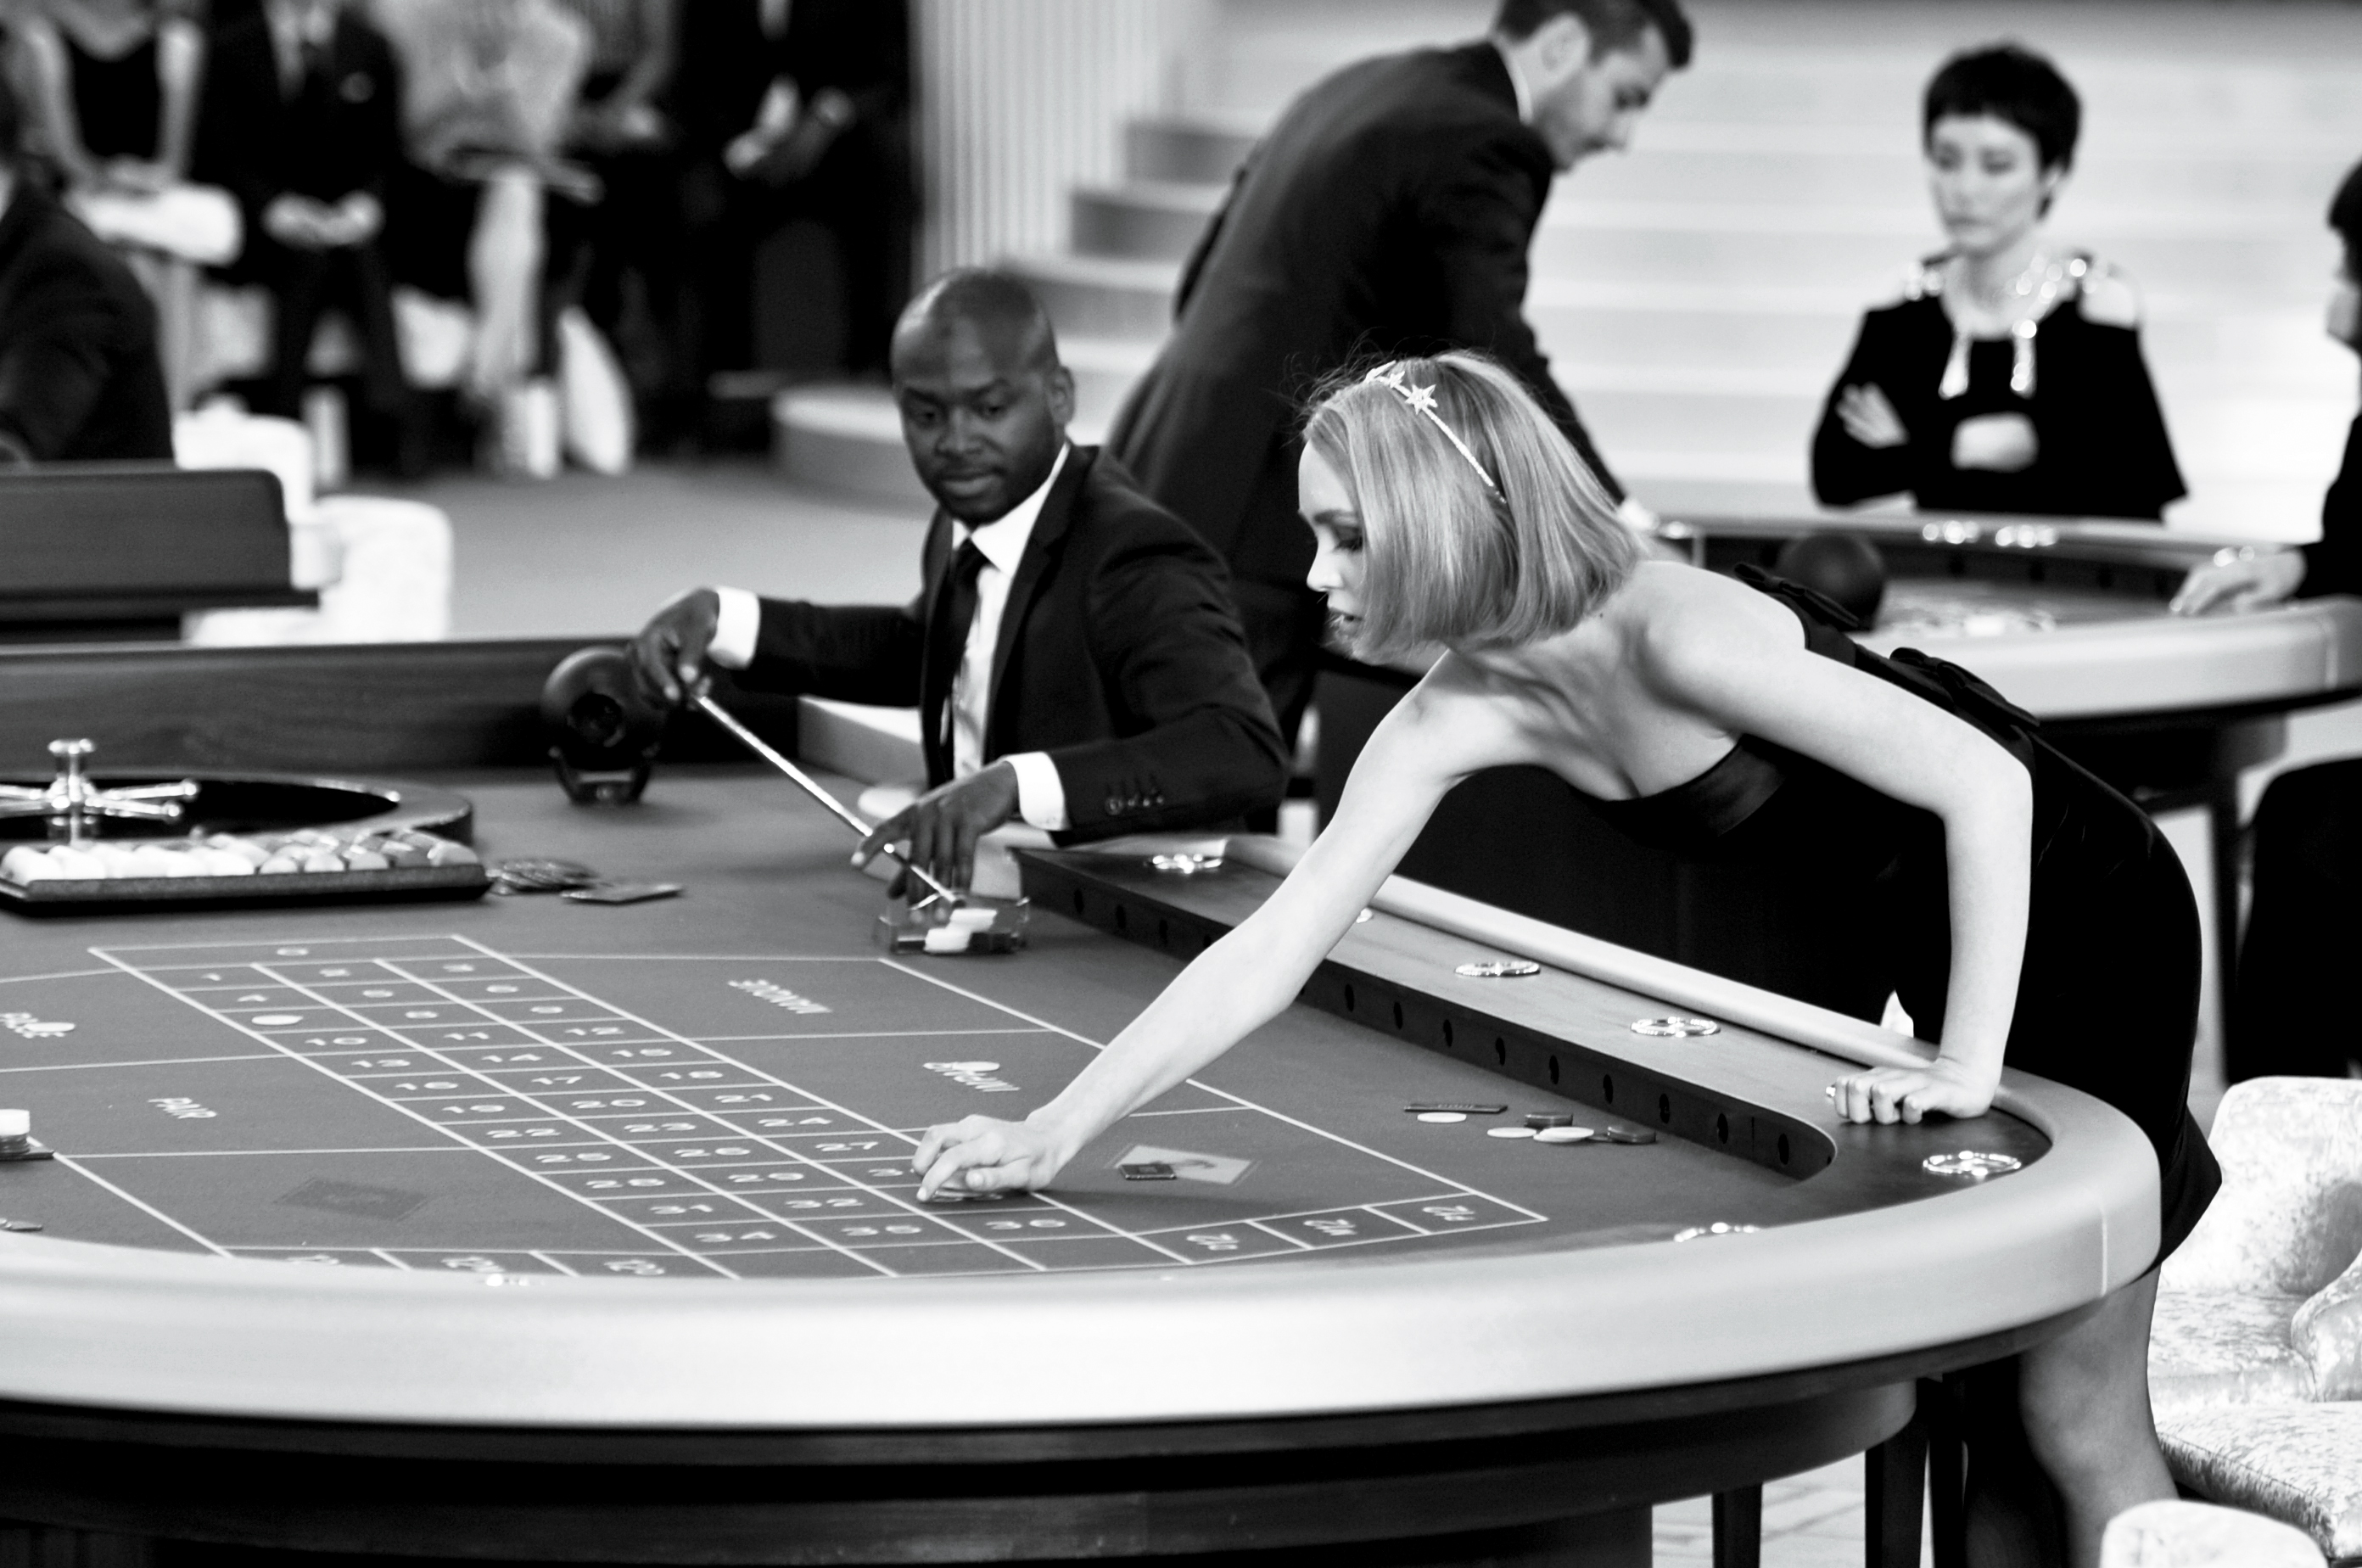 July 8th: Karl Lagerfeld's Chanel couture show converts the Grand Palais into the Cercle Privé casino.